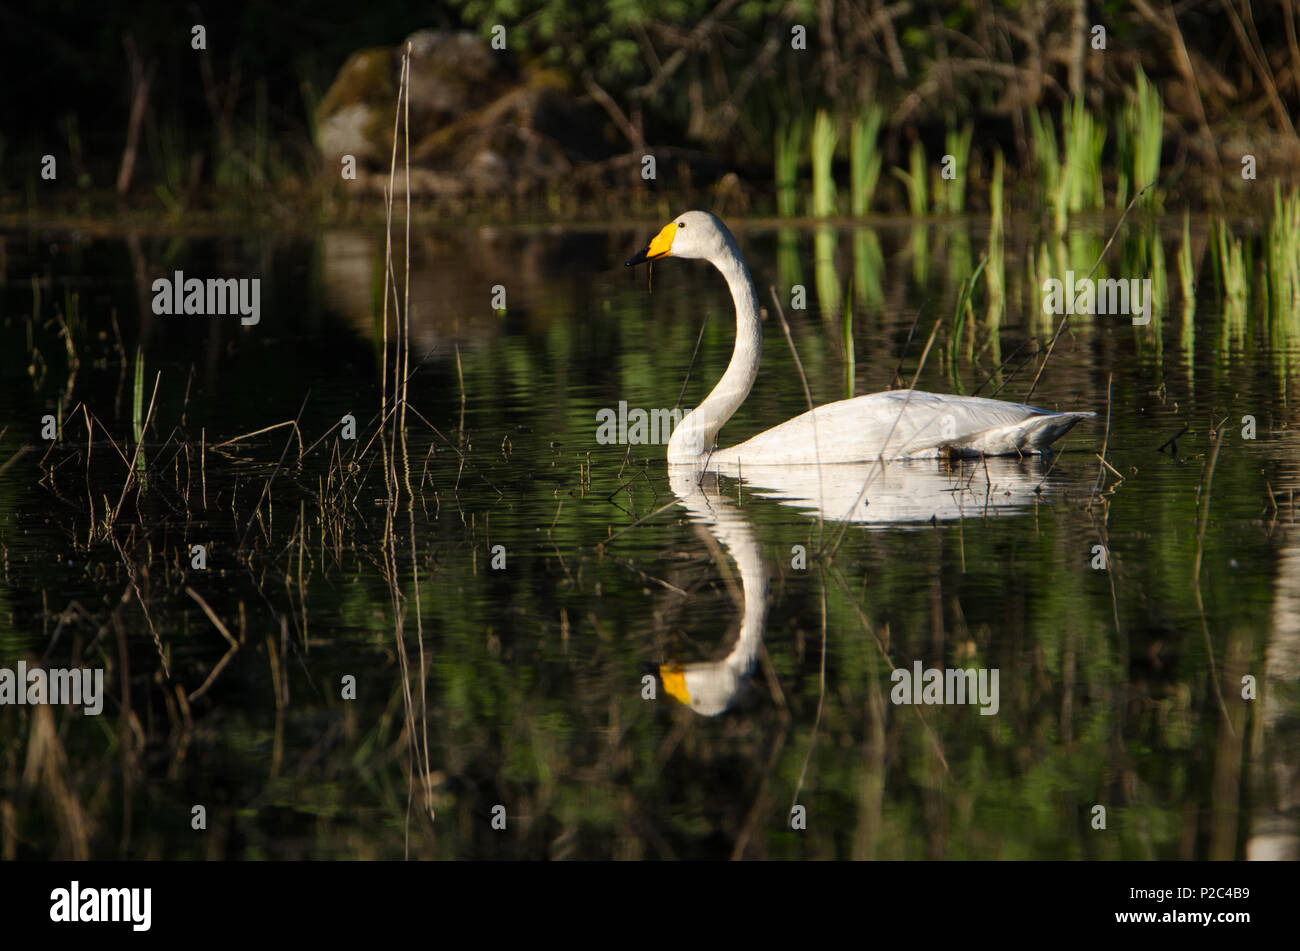 Cygnus cygnus (Golden reflection). Cygnus cygnus on golden early morning light. Lake Kukkia, Luopioinen, Finland. - Stock Image